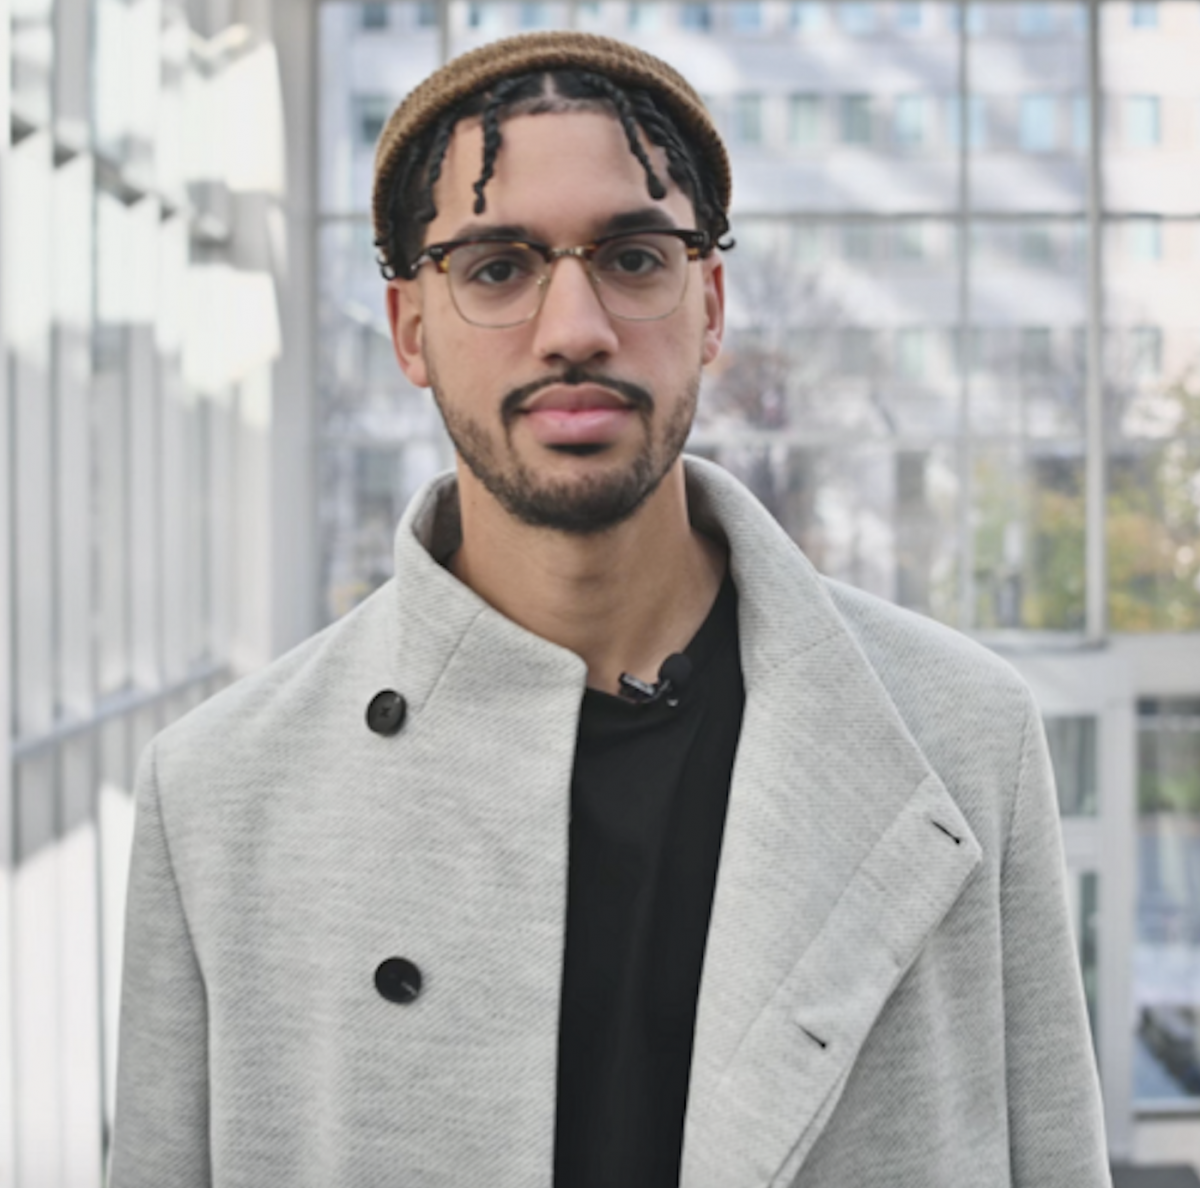 A Black man with a beanie hat and glasses, wearing a grey plaid coat stares at the camera. He is Phil G. Joseph, creator of Rep Matters.